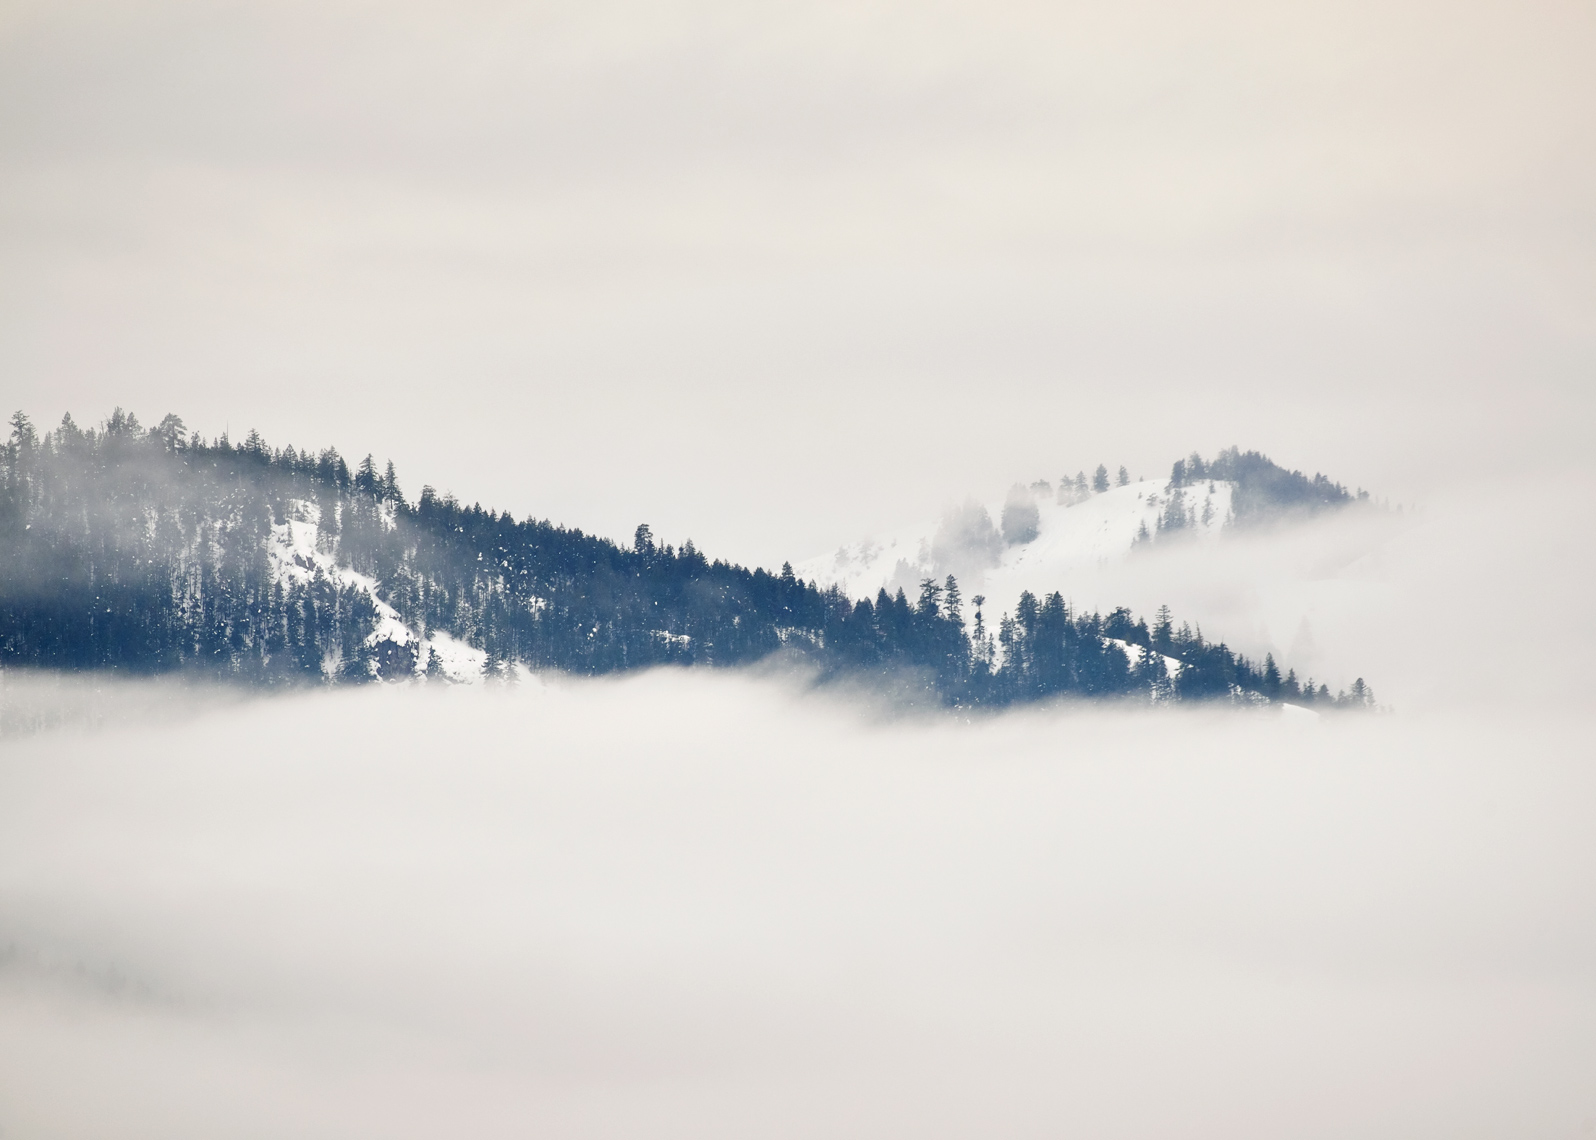 Mountain floats in mist in this landscape photo